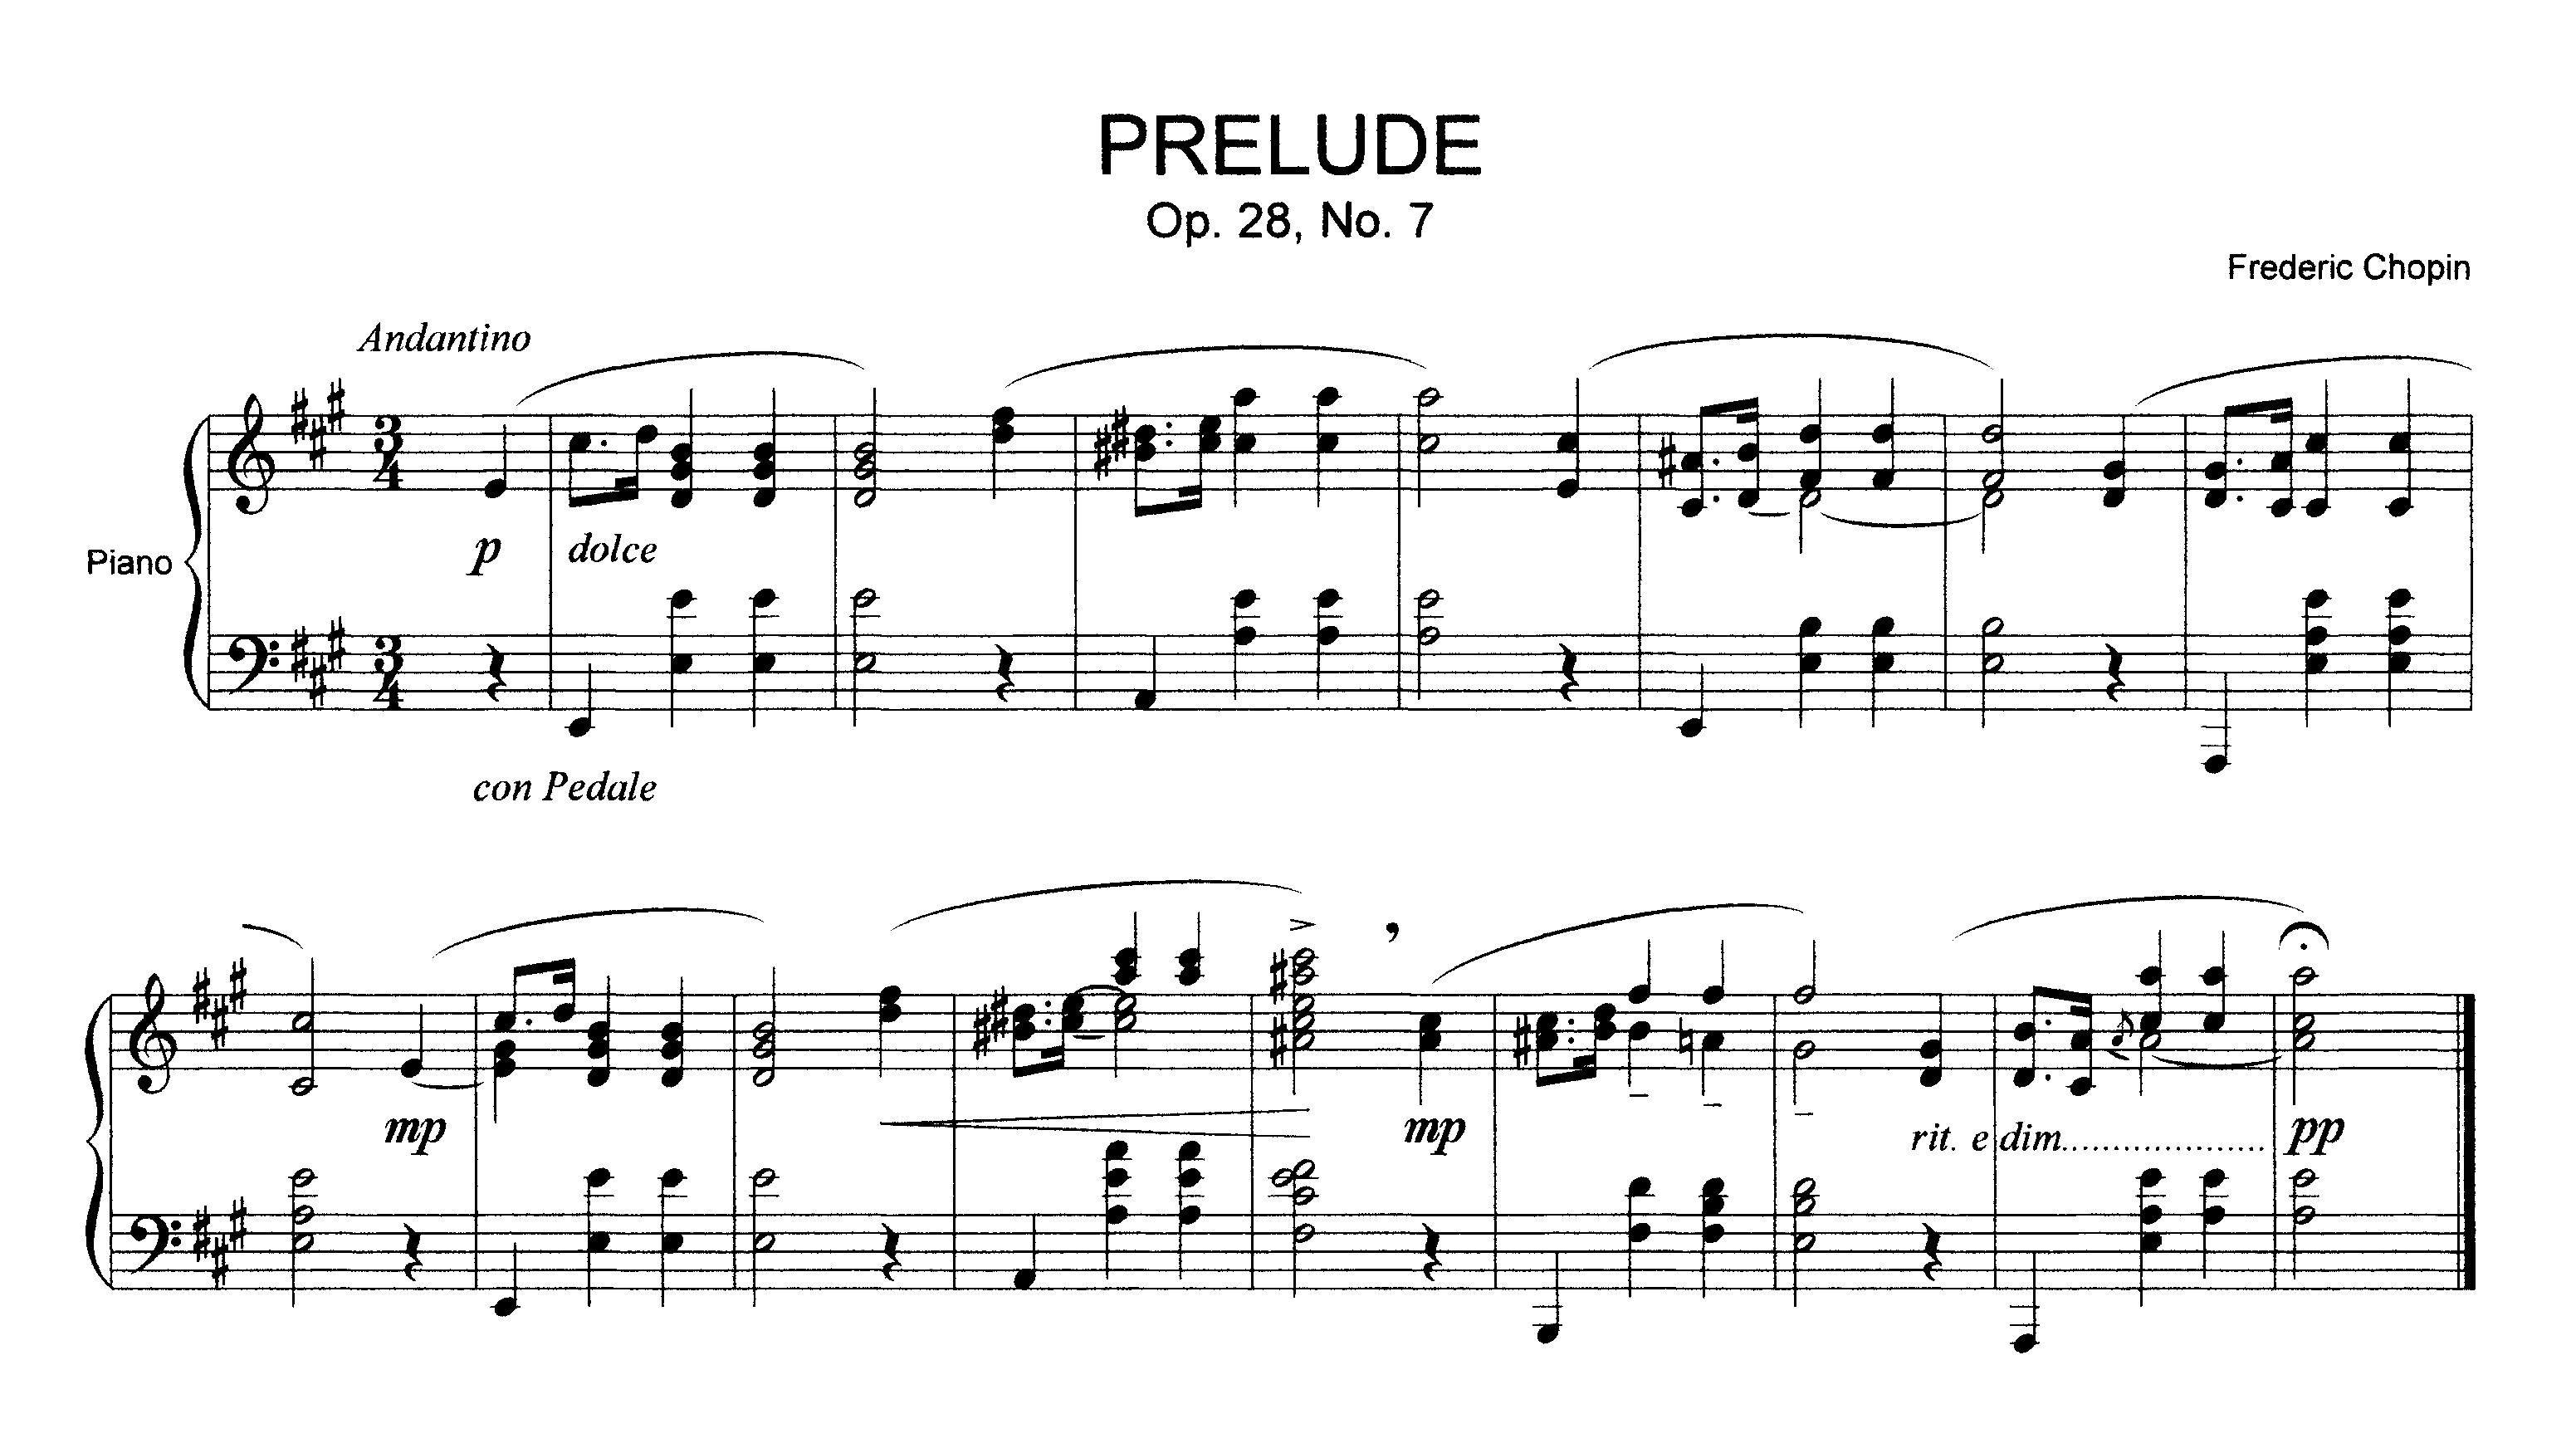 An example of modern musical notation: Prelude, Op. 28, No. 7, by Frederic Chopin